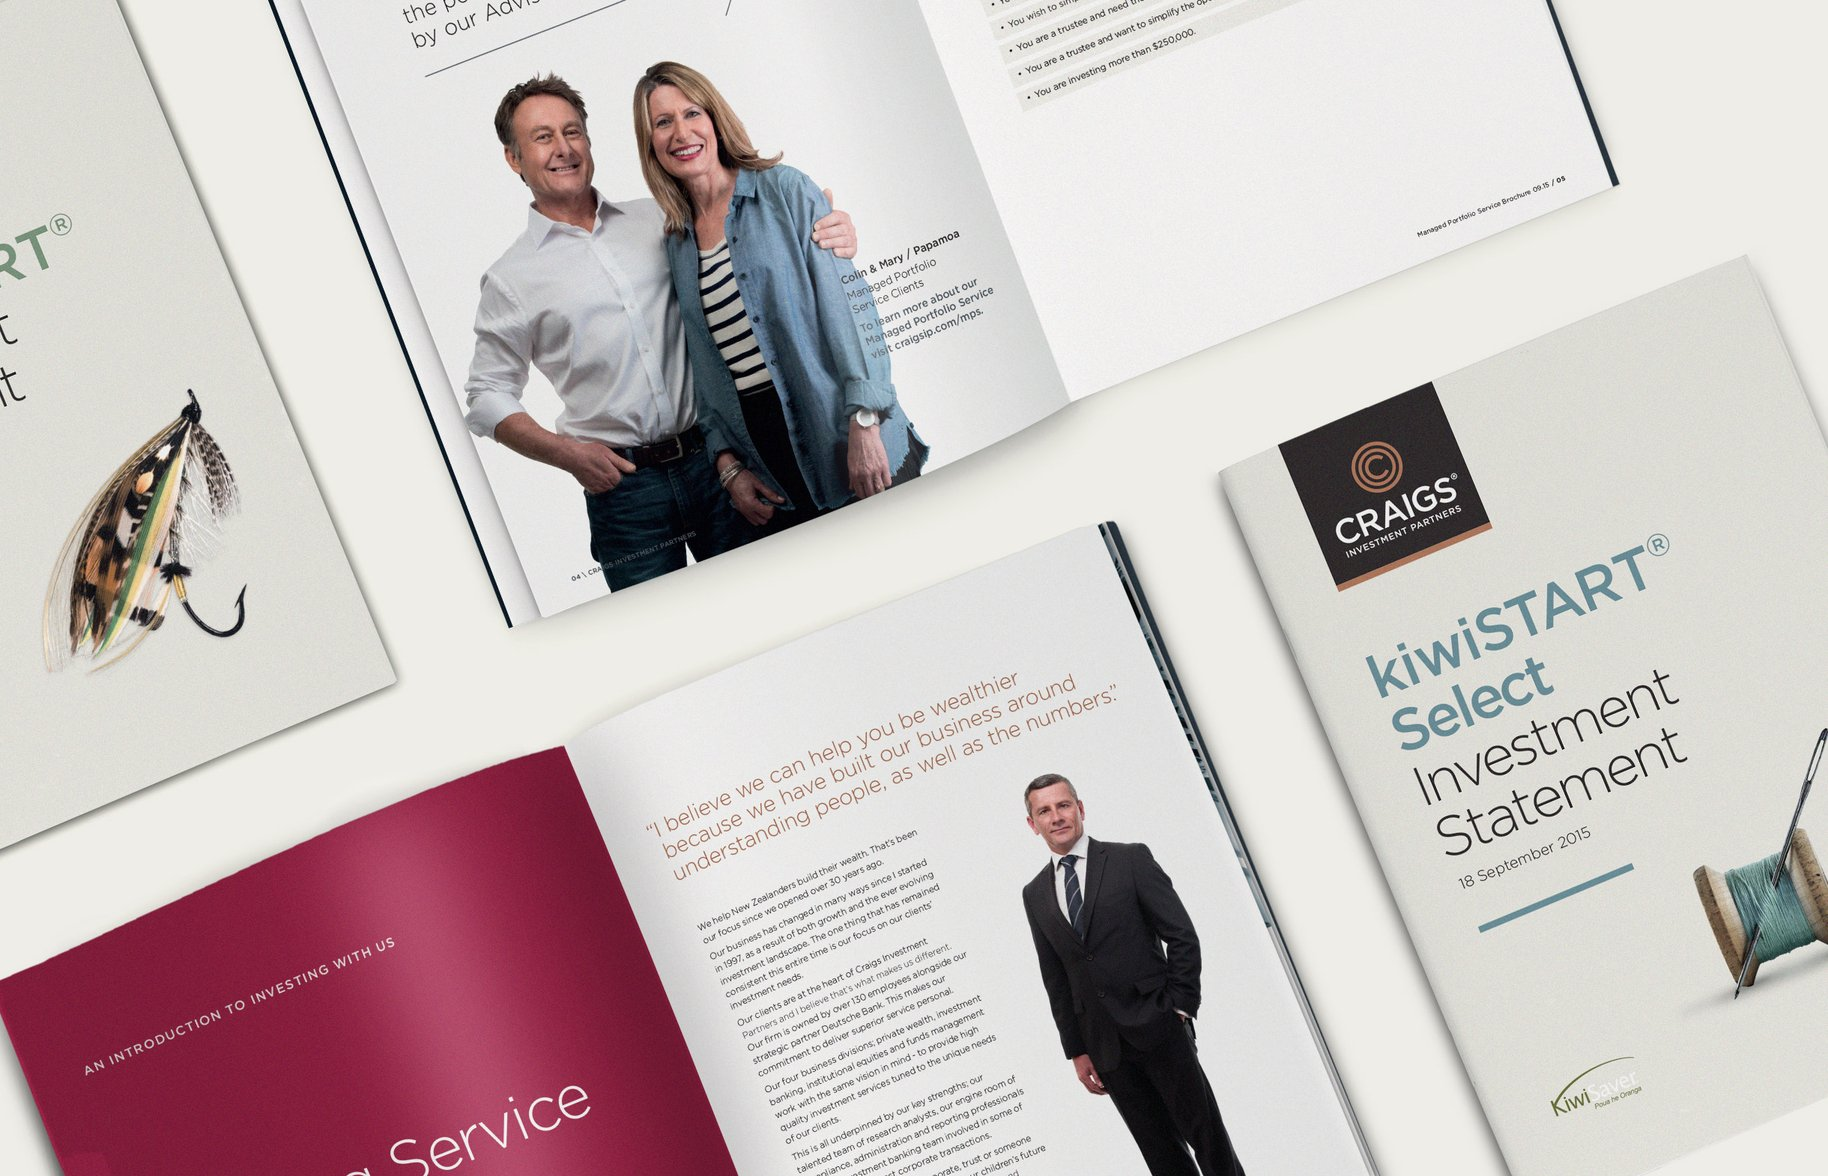 Craigs Investment Partners booklet spreads